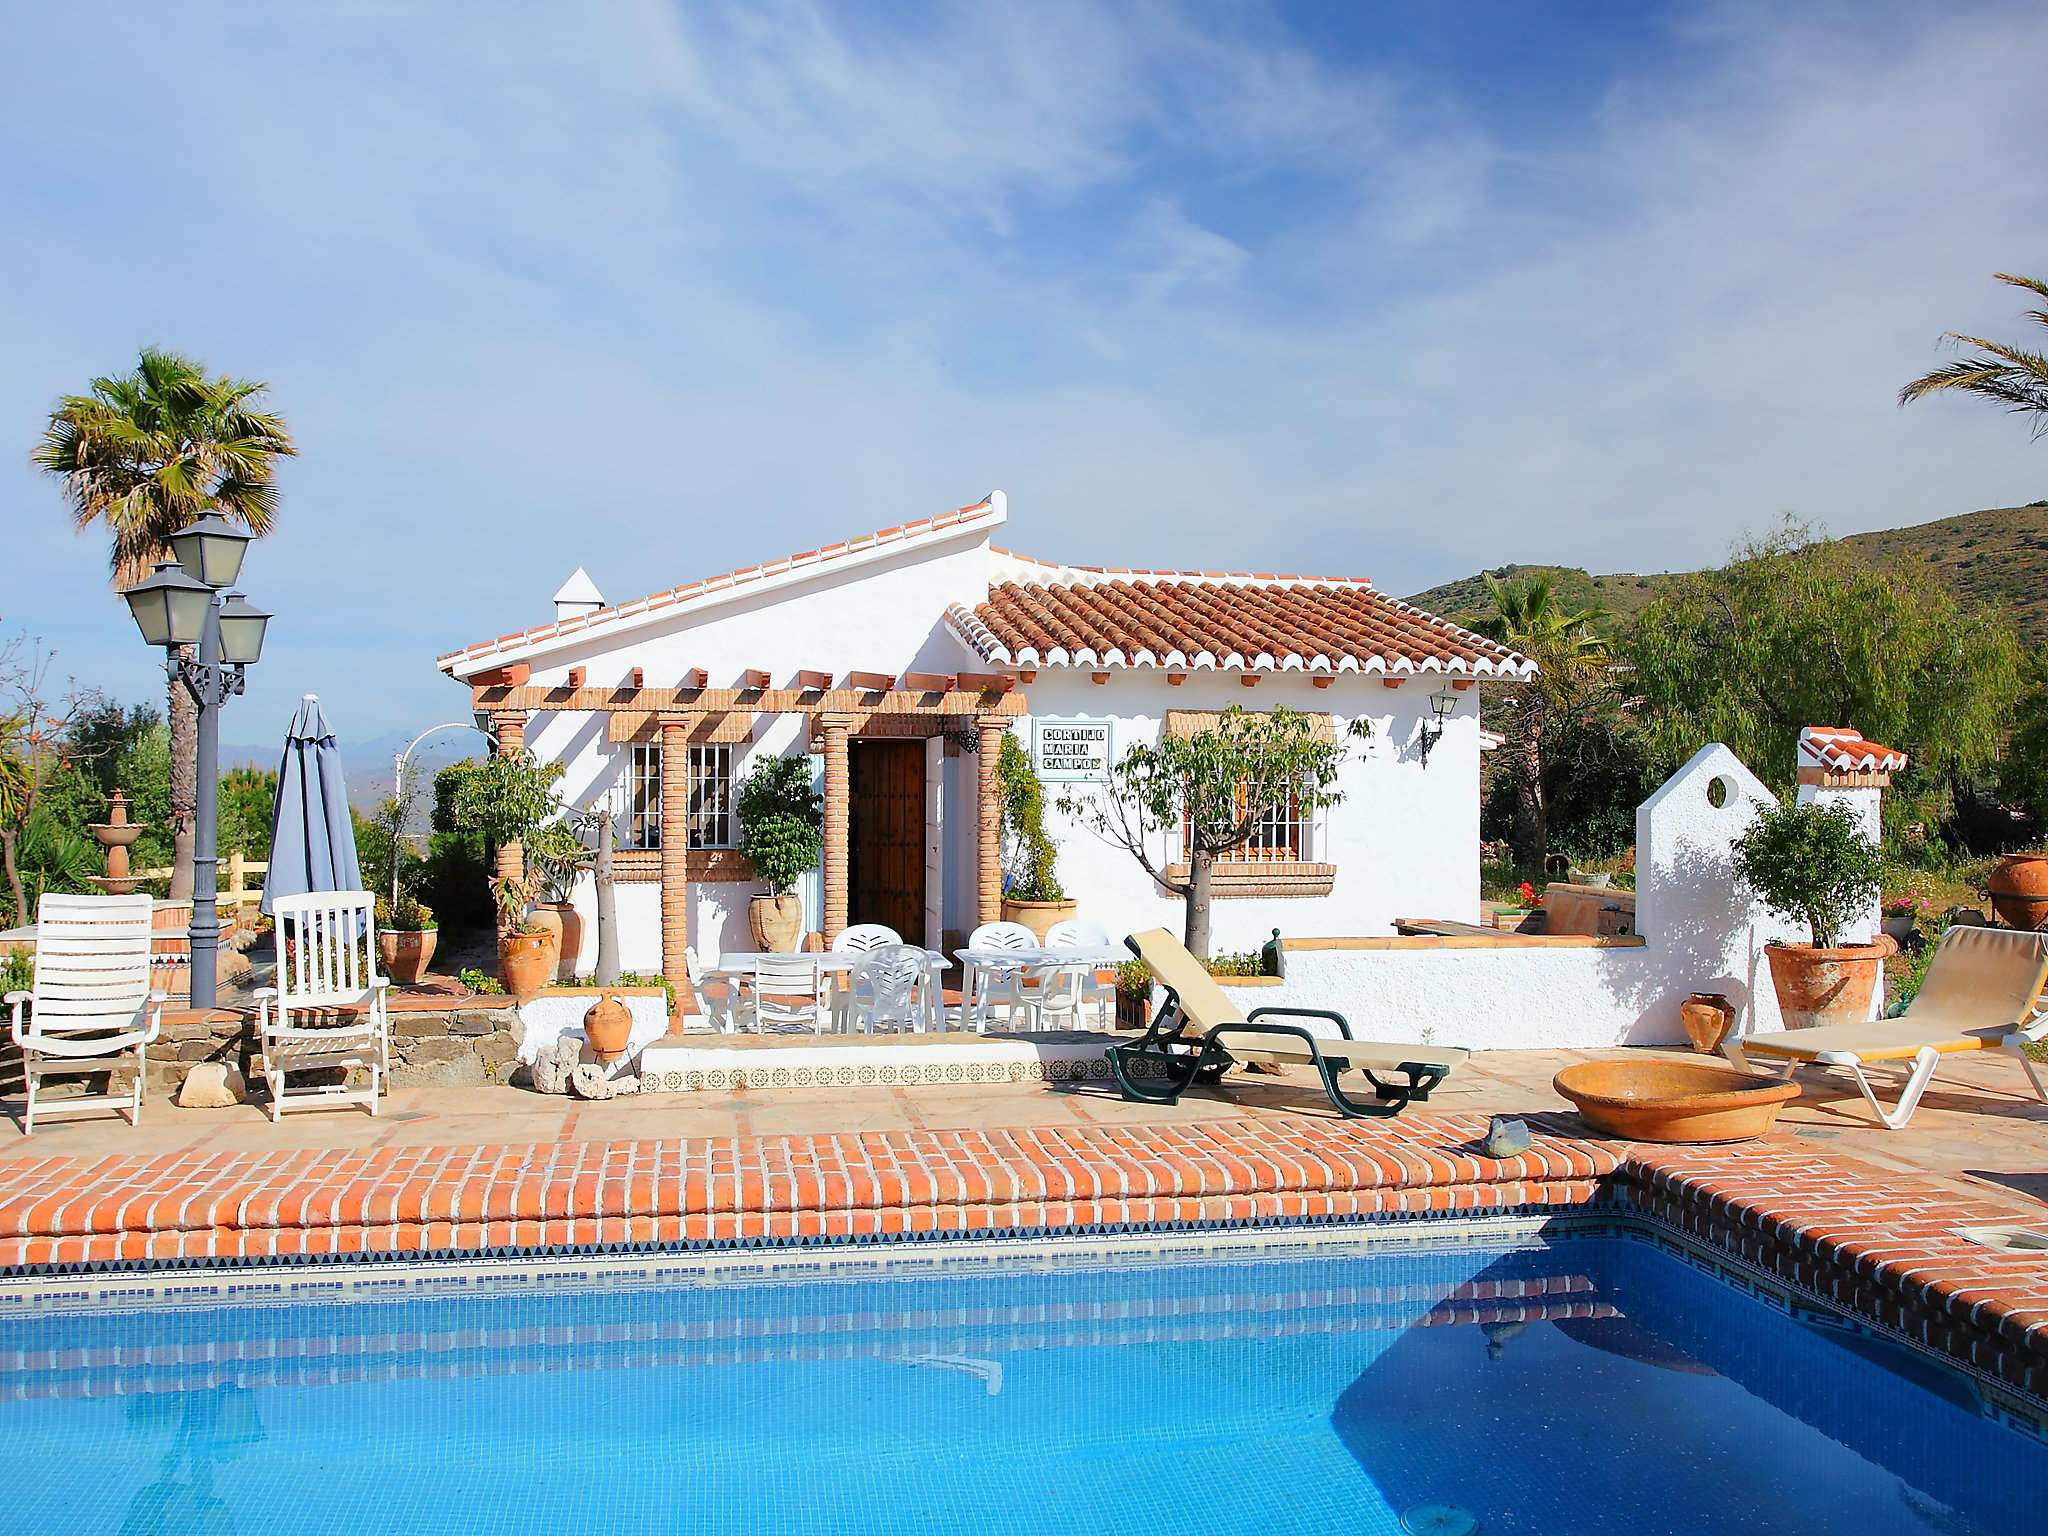 Holiday Home V 233 Lez M 225 Laga Costa Del Sol Villa Spain For